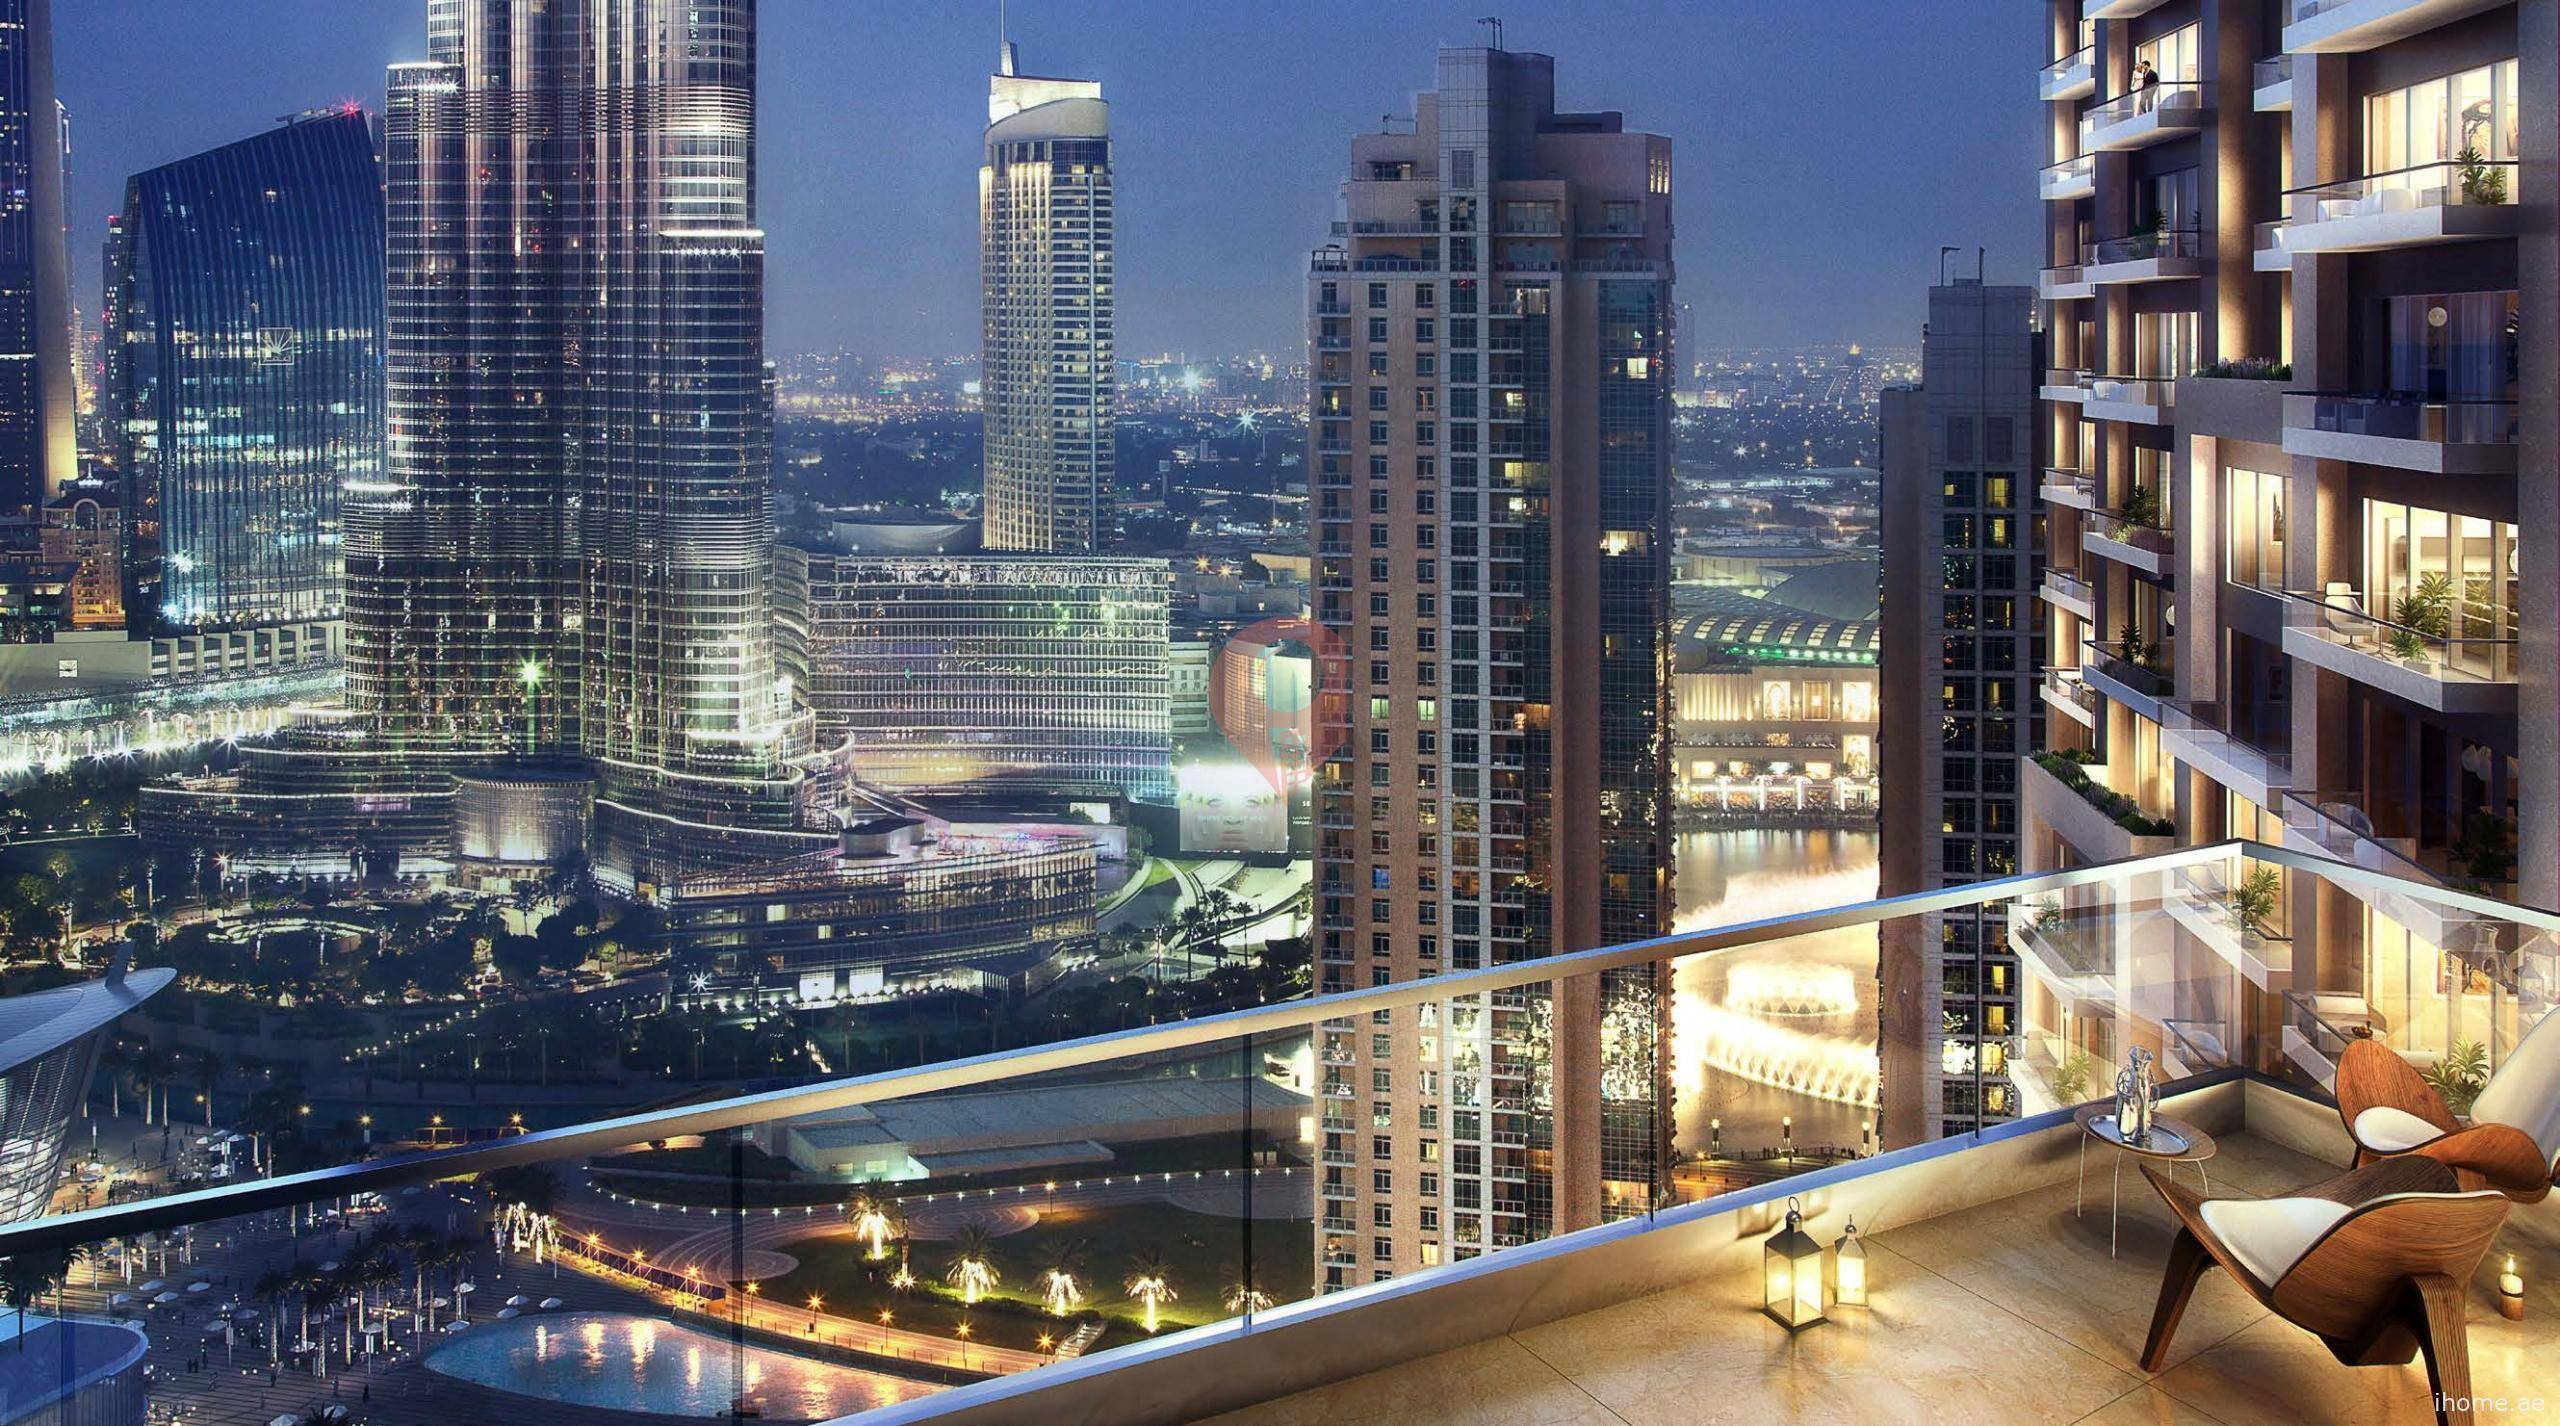 Act One Act Two Tower in Downtown Dubai for sale